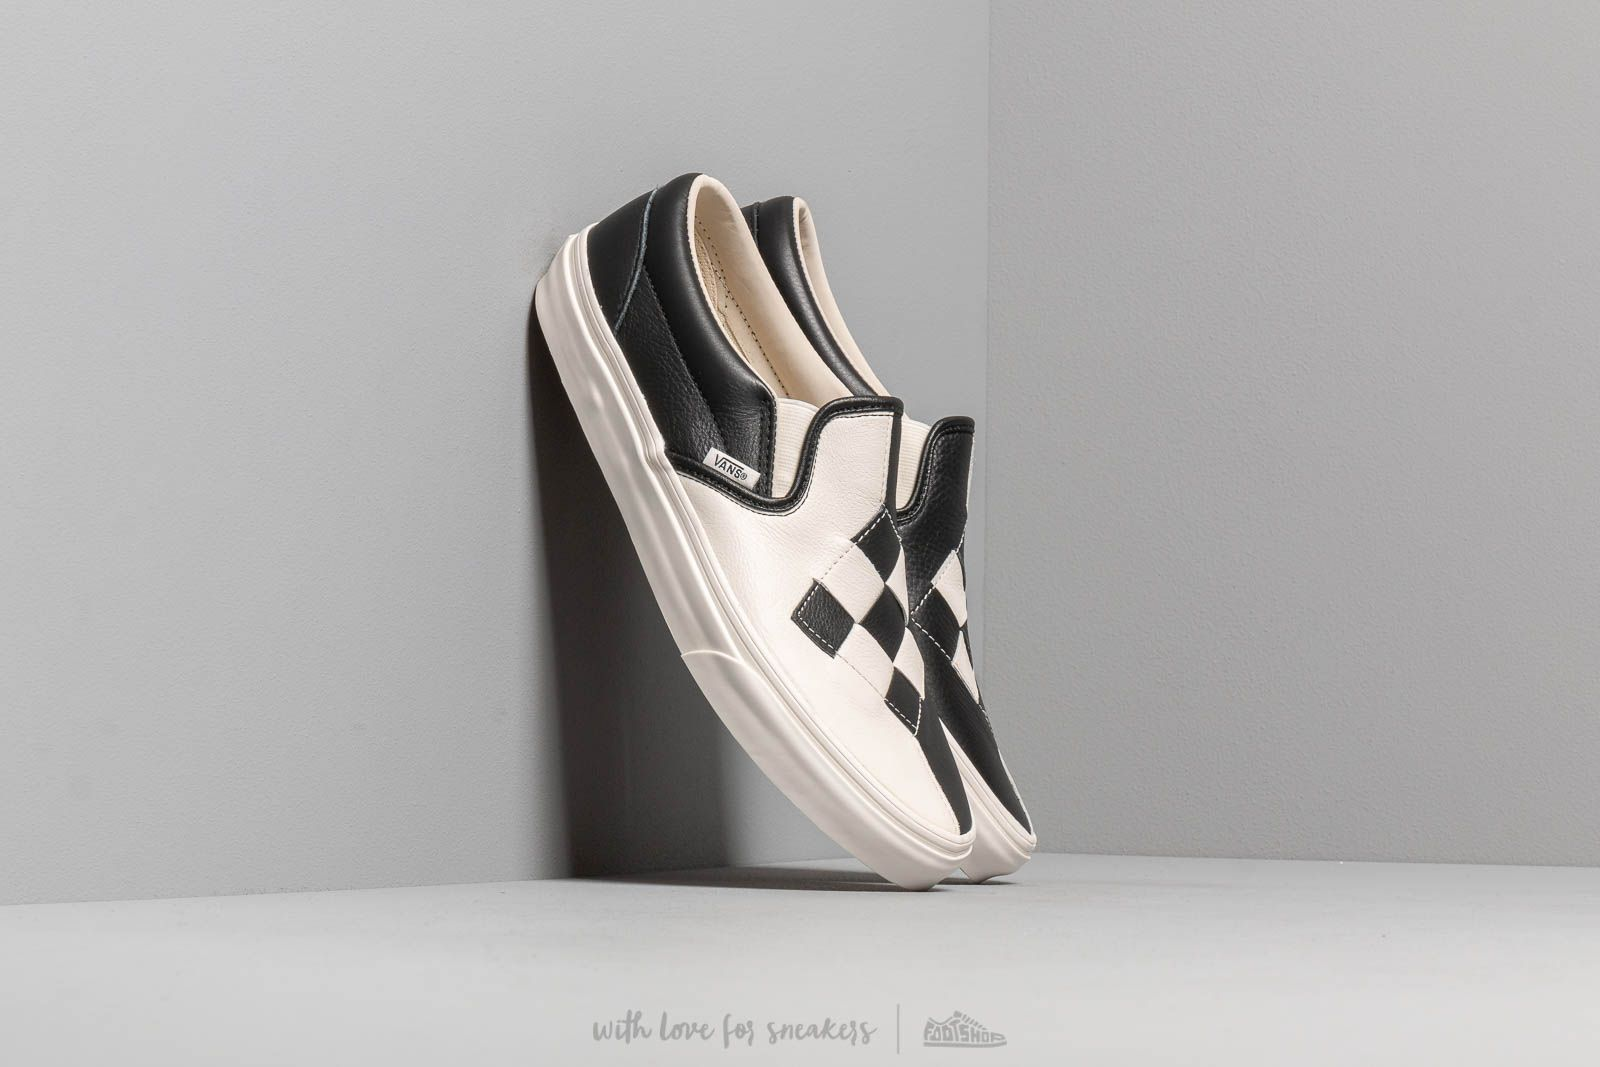 Moški čevlji Vans Classic Slip-On (Woven Leather) Checkerboard